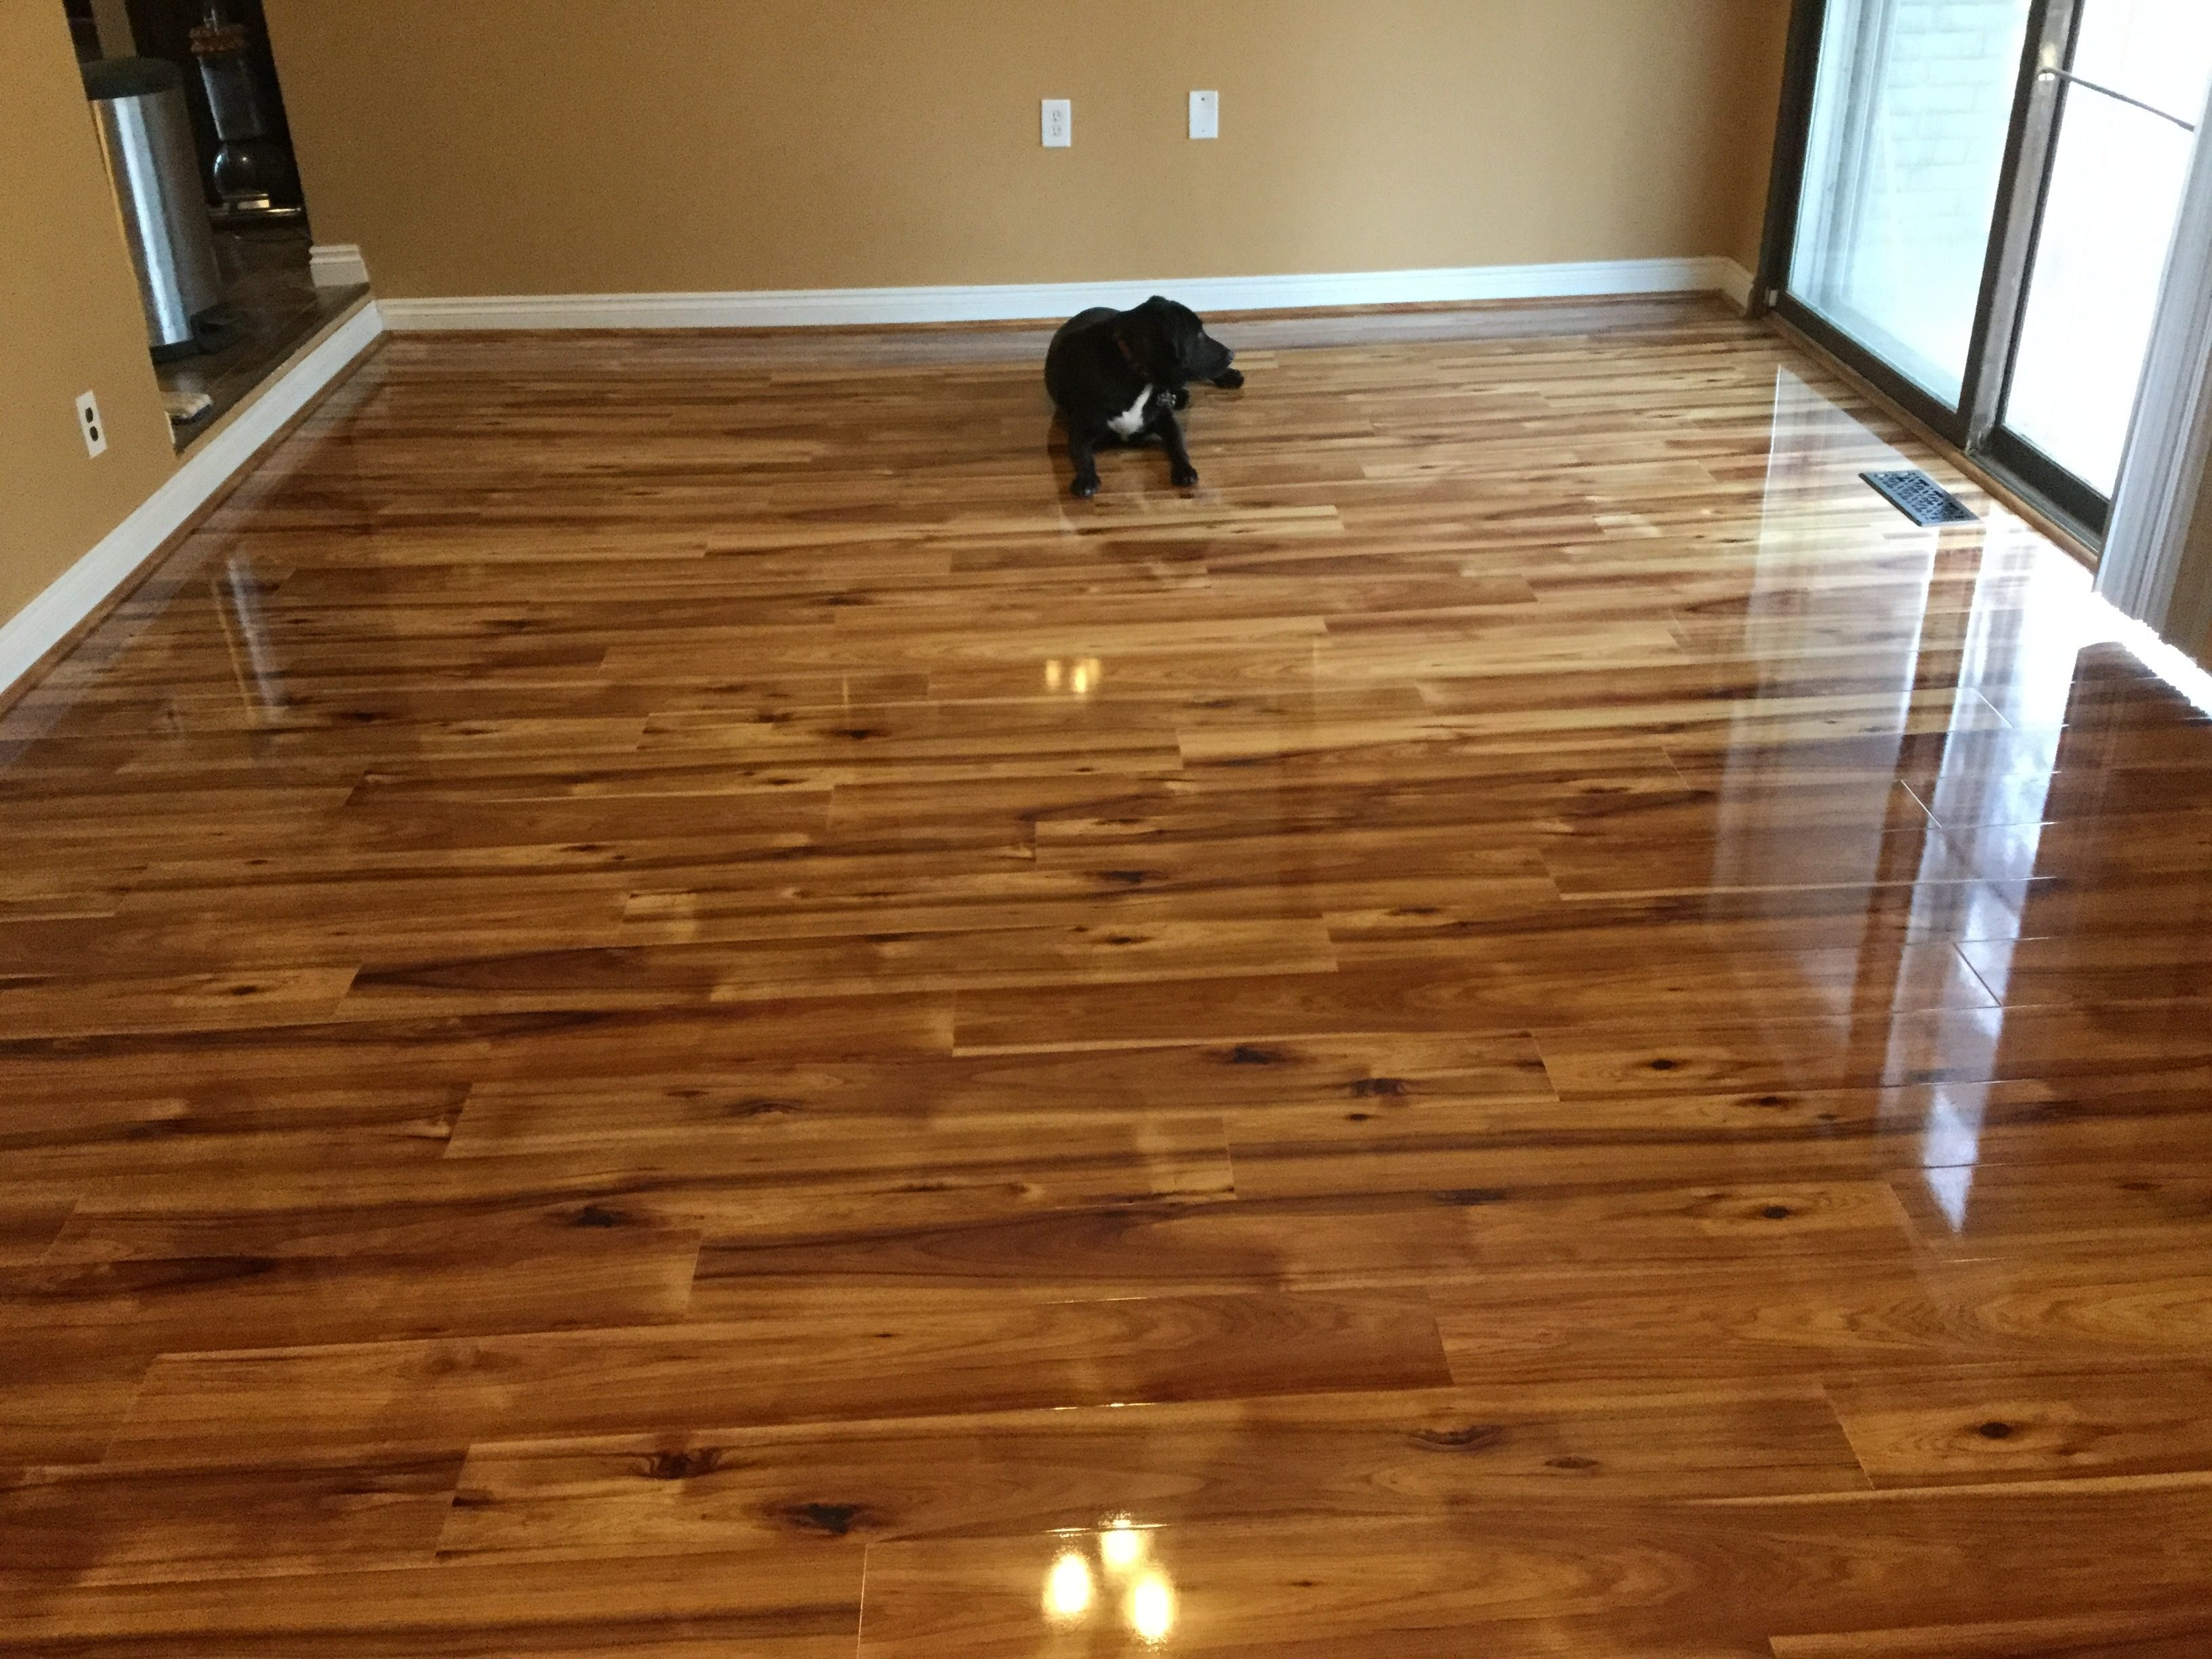 Lumber liquidators modesto california home flooring ideas Flooring modesto